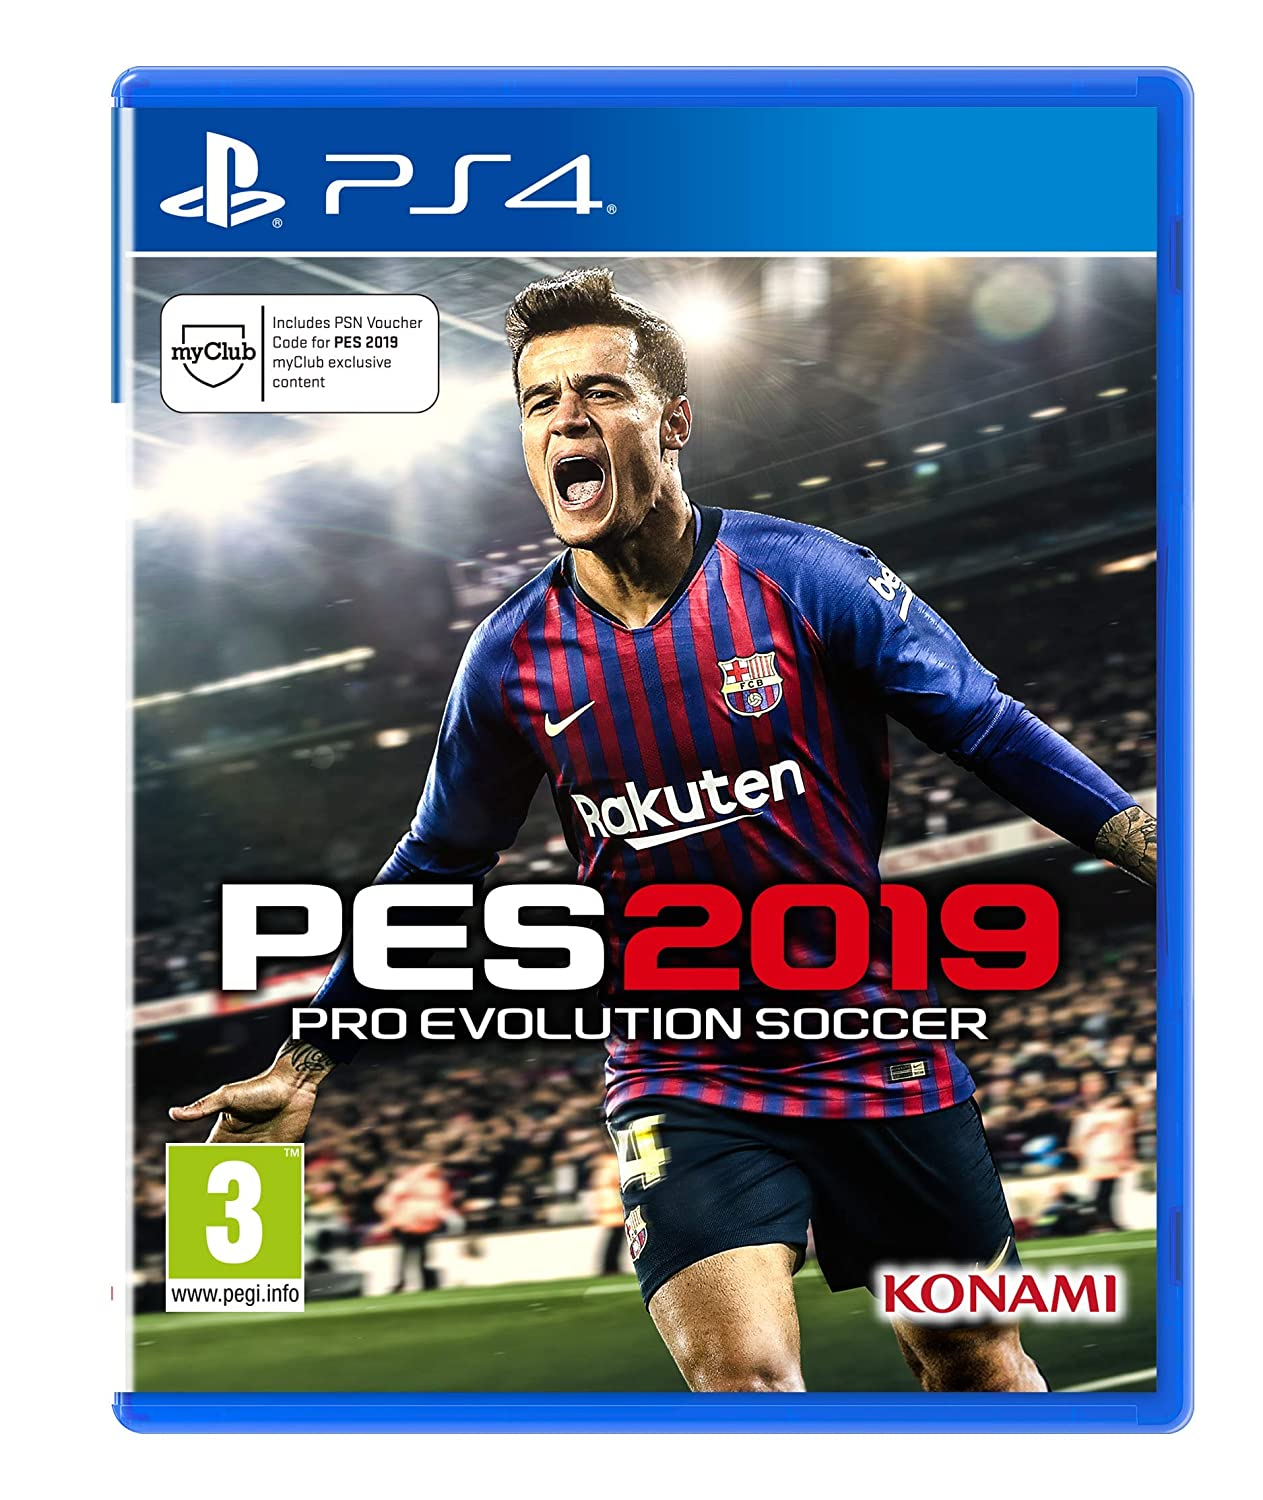 d31a0e66360d Pro Evolution Soccer 2019 (PS4)  Amazon.co.uk  PC   Video Games